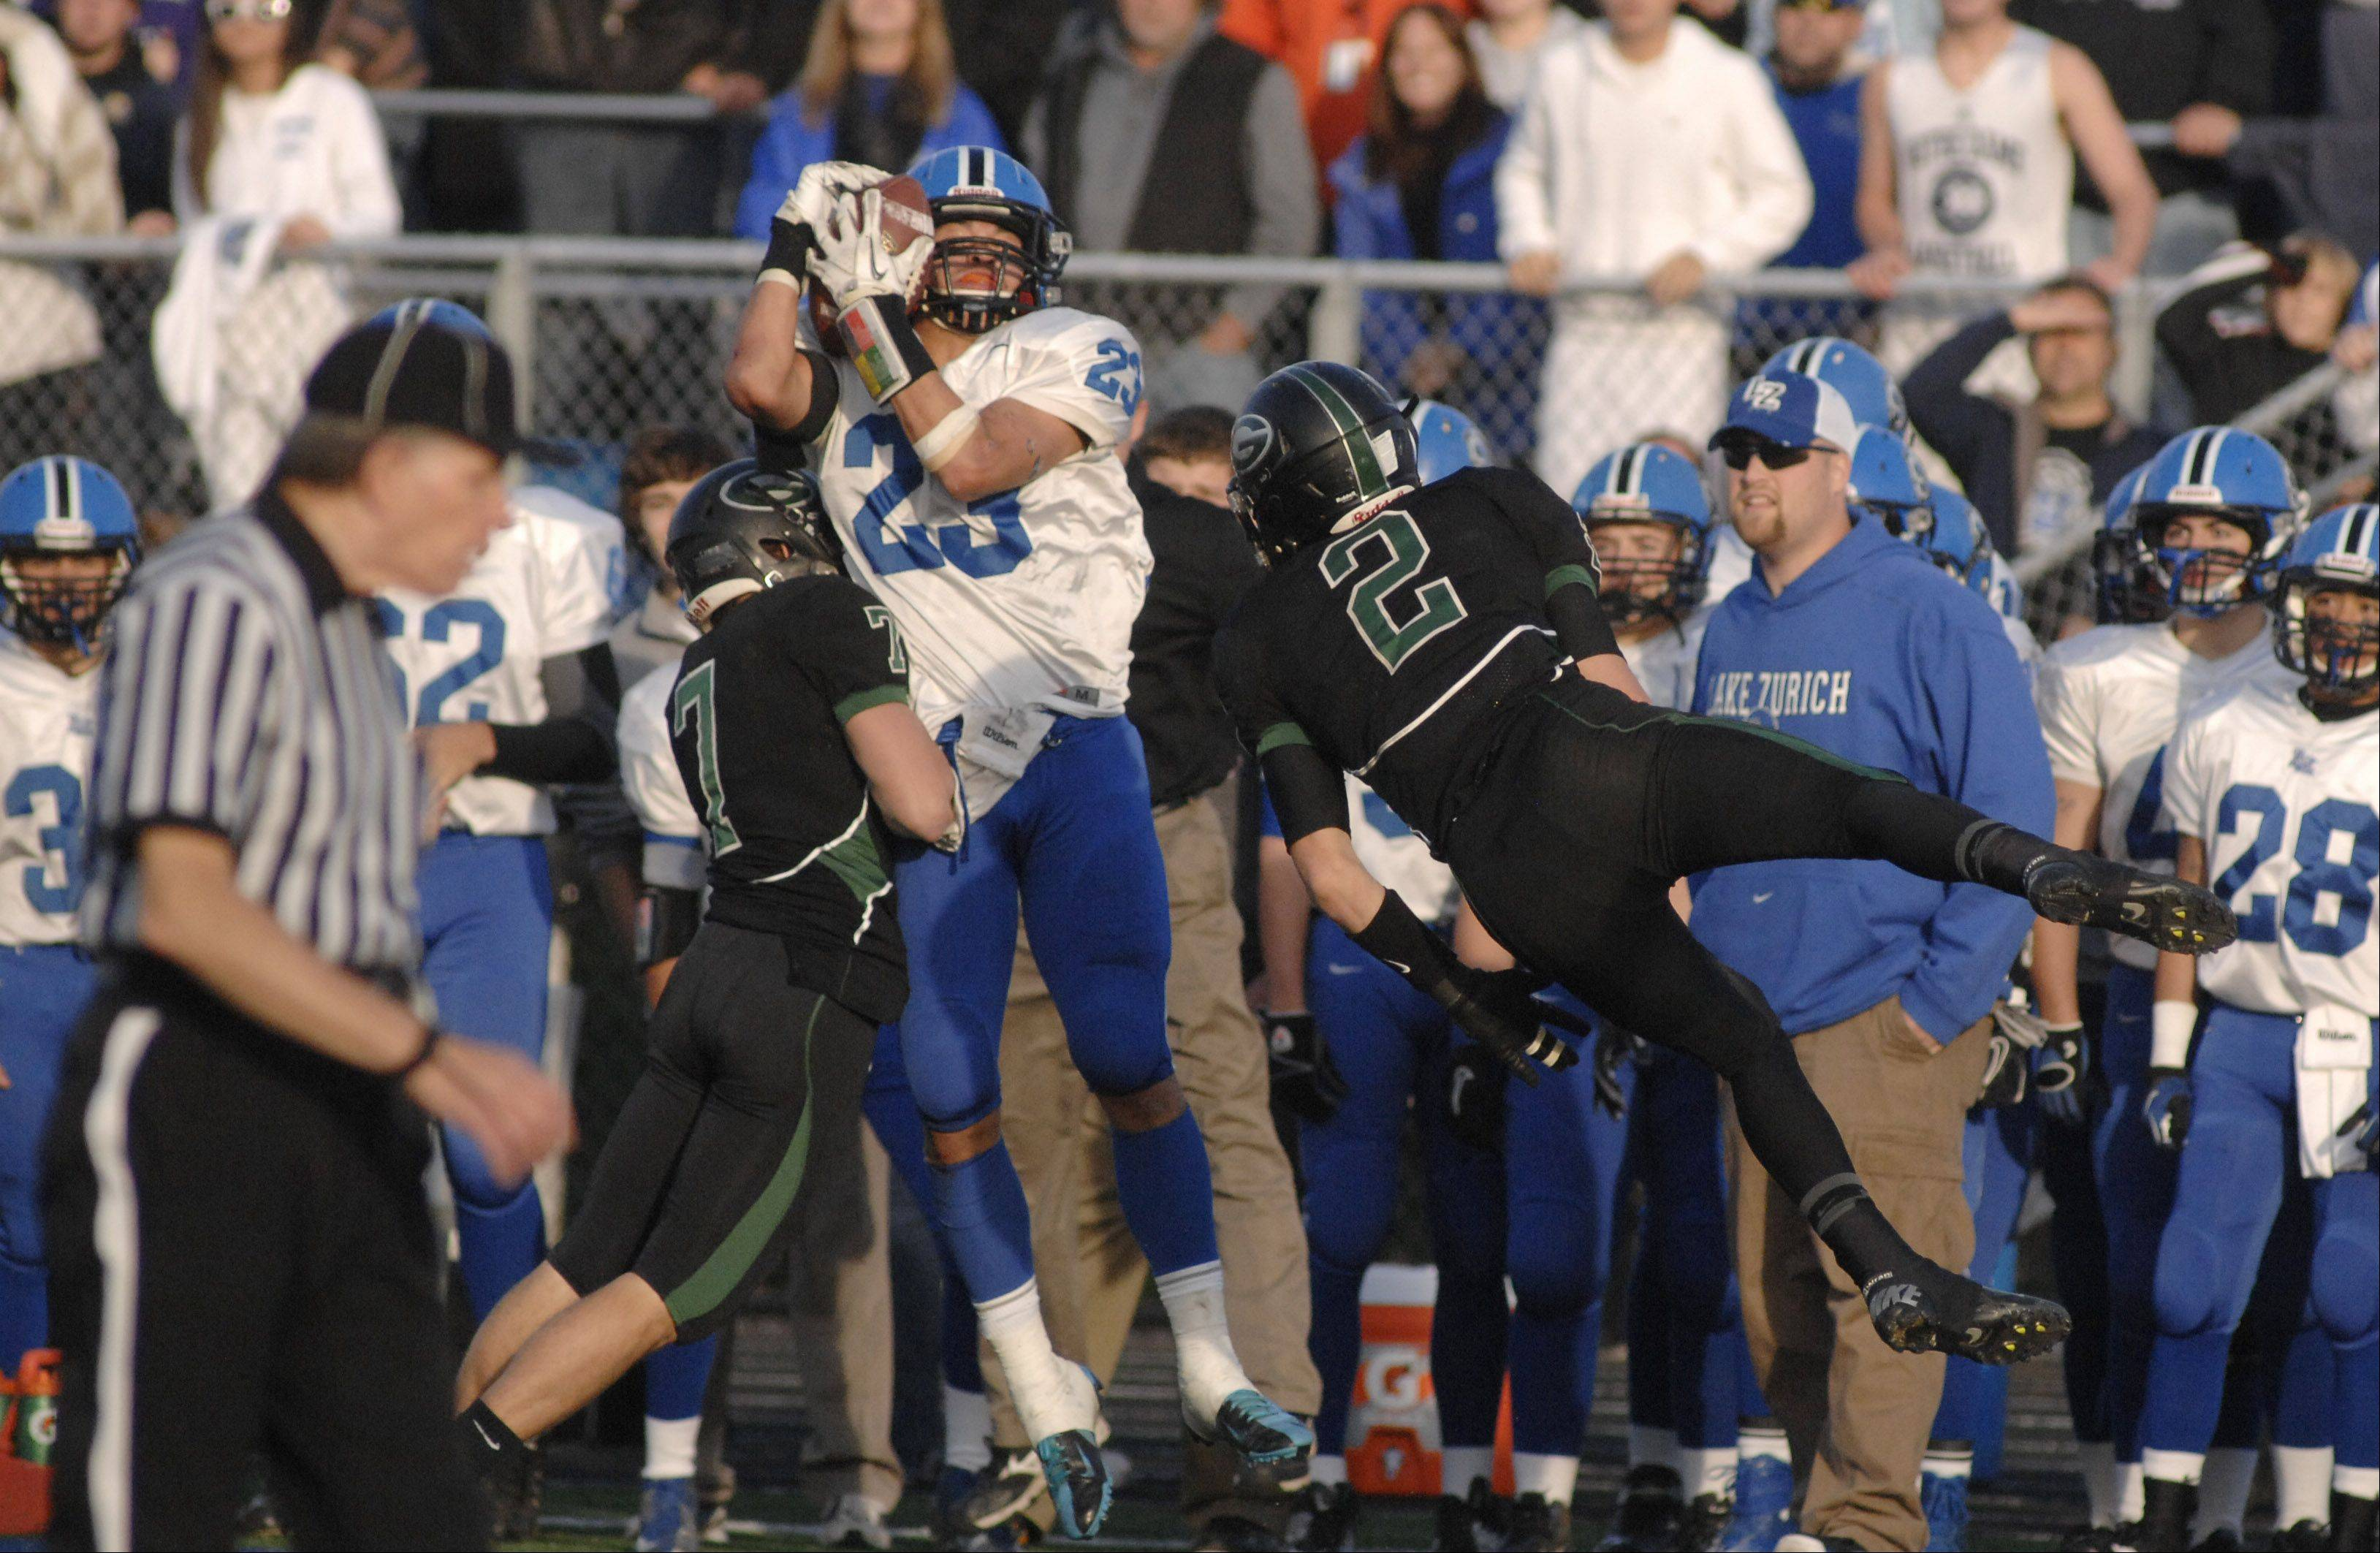 Lake Zurich's Grant Soucy completes a pass despite blocking attempts by Glenbard West's Charlie Sweeney and Joe Marconi in the fourth quarter on Saturday, Nov. 17.